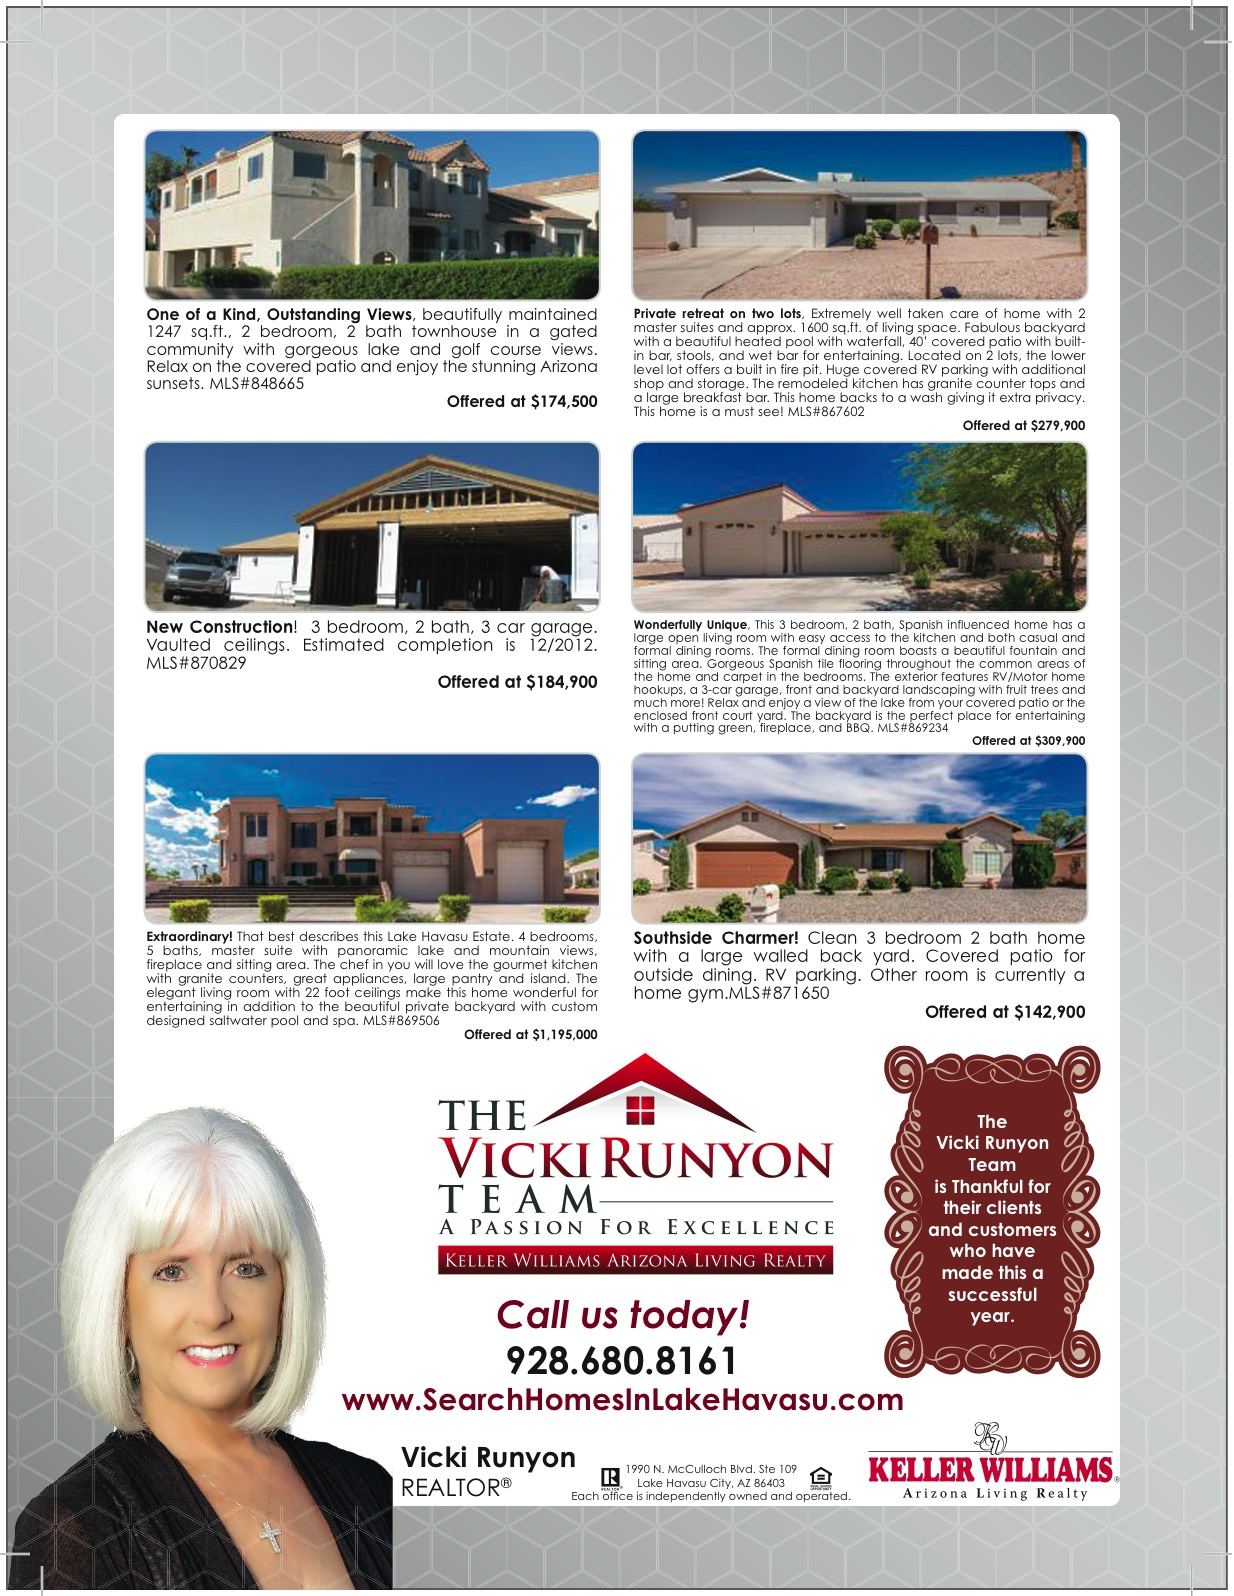 Keller williams arizona living realty tvrtb for Ad house